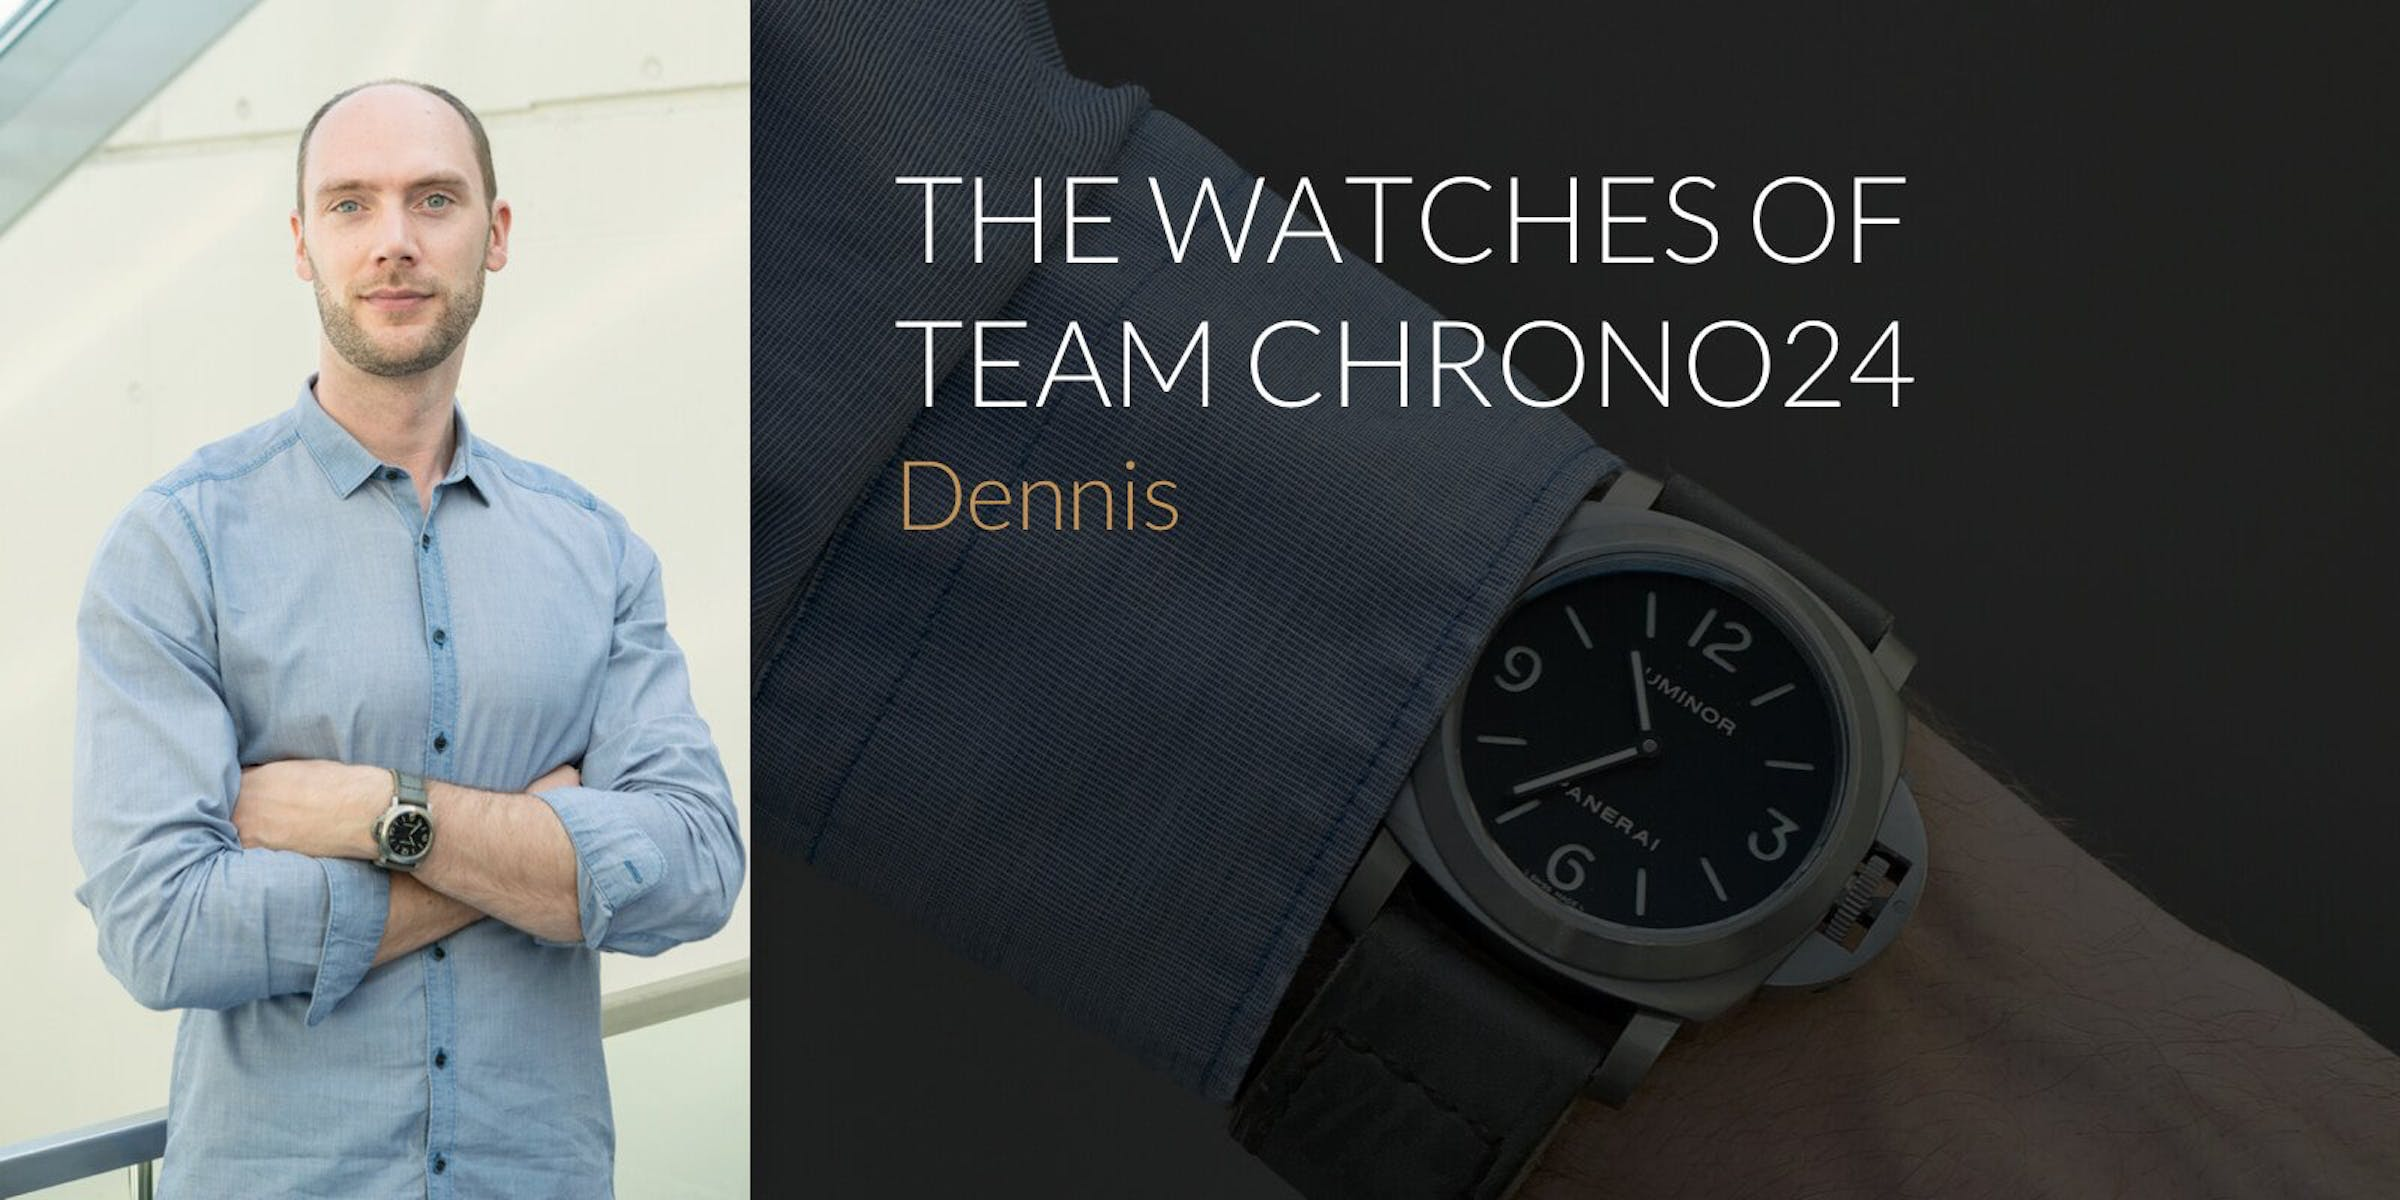 The Watches of Team Chrono24: Dennis